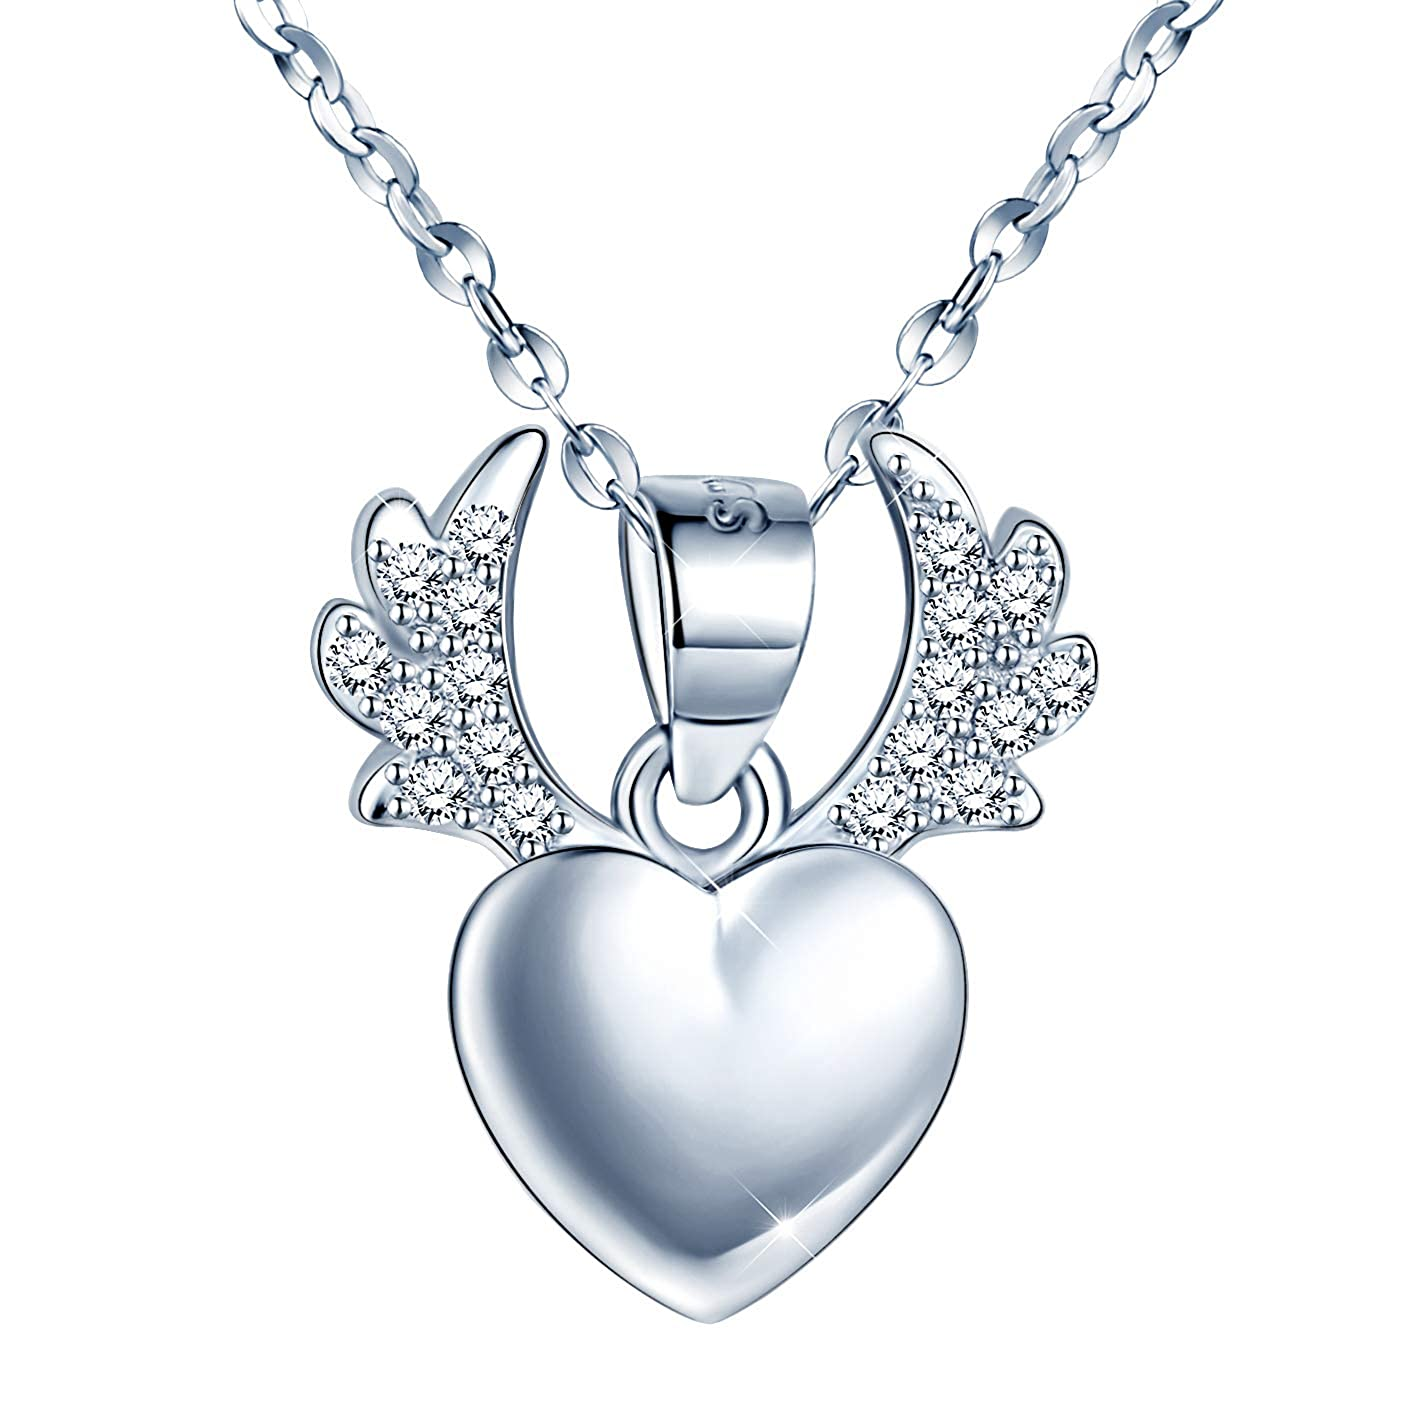 15.8+1.2 Infinite U Angels Wing Necklace Love Crystal Guardian Angel Pendant Necklace for Girl